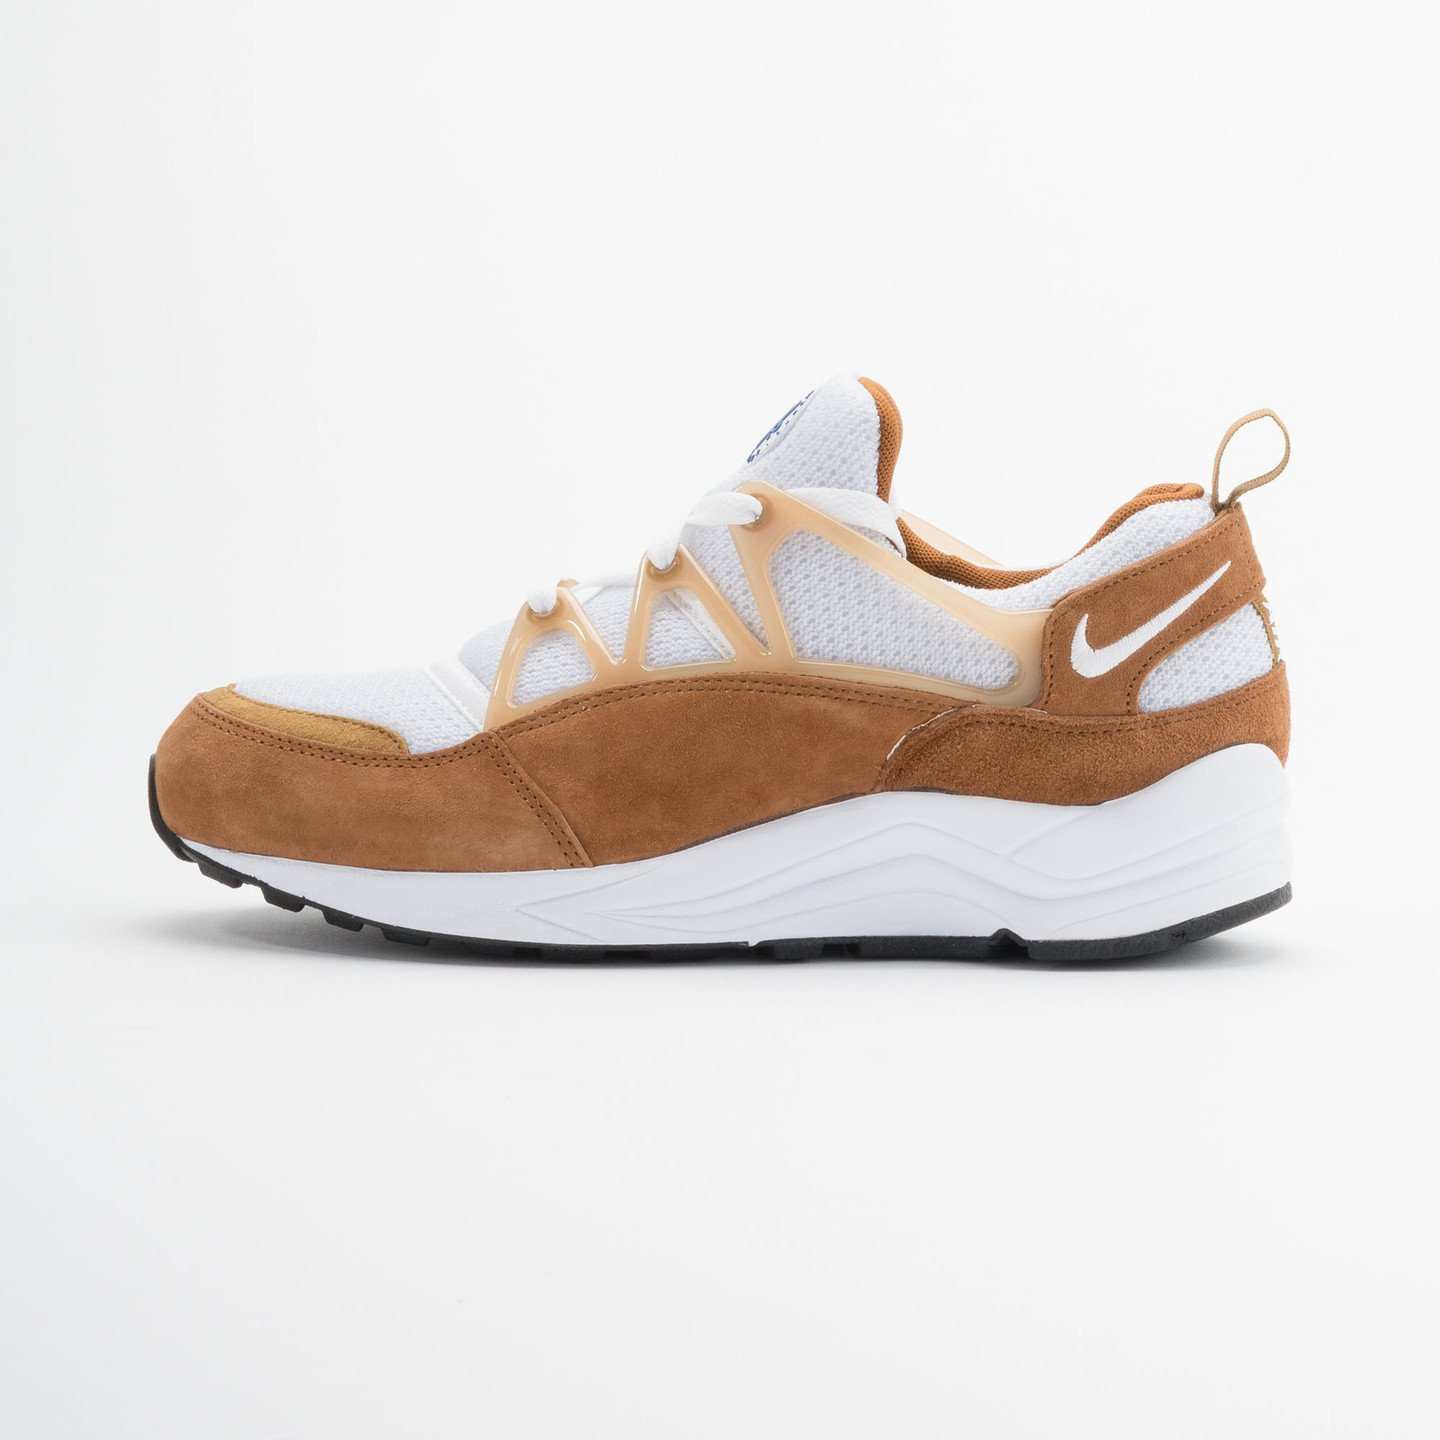 Nike Air Huarache Light Dark Curry / White-Wheat 306127-717-46